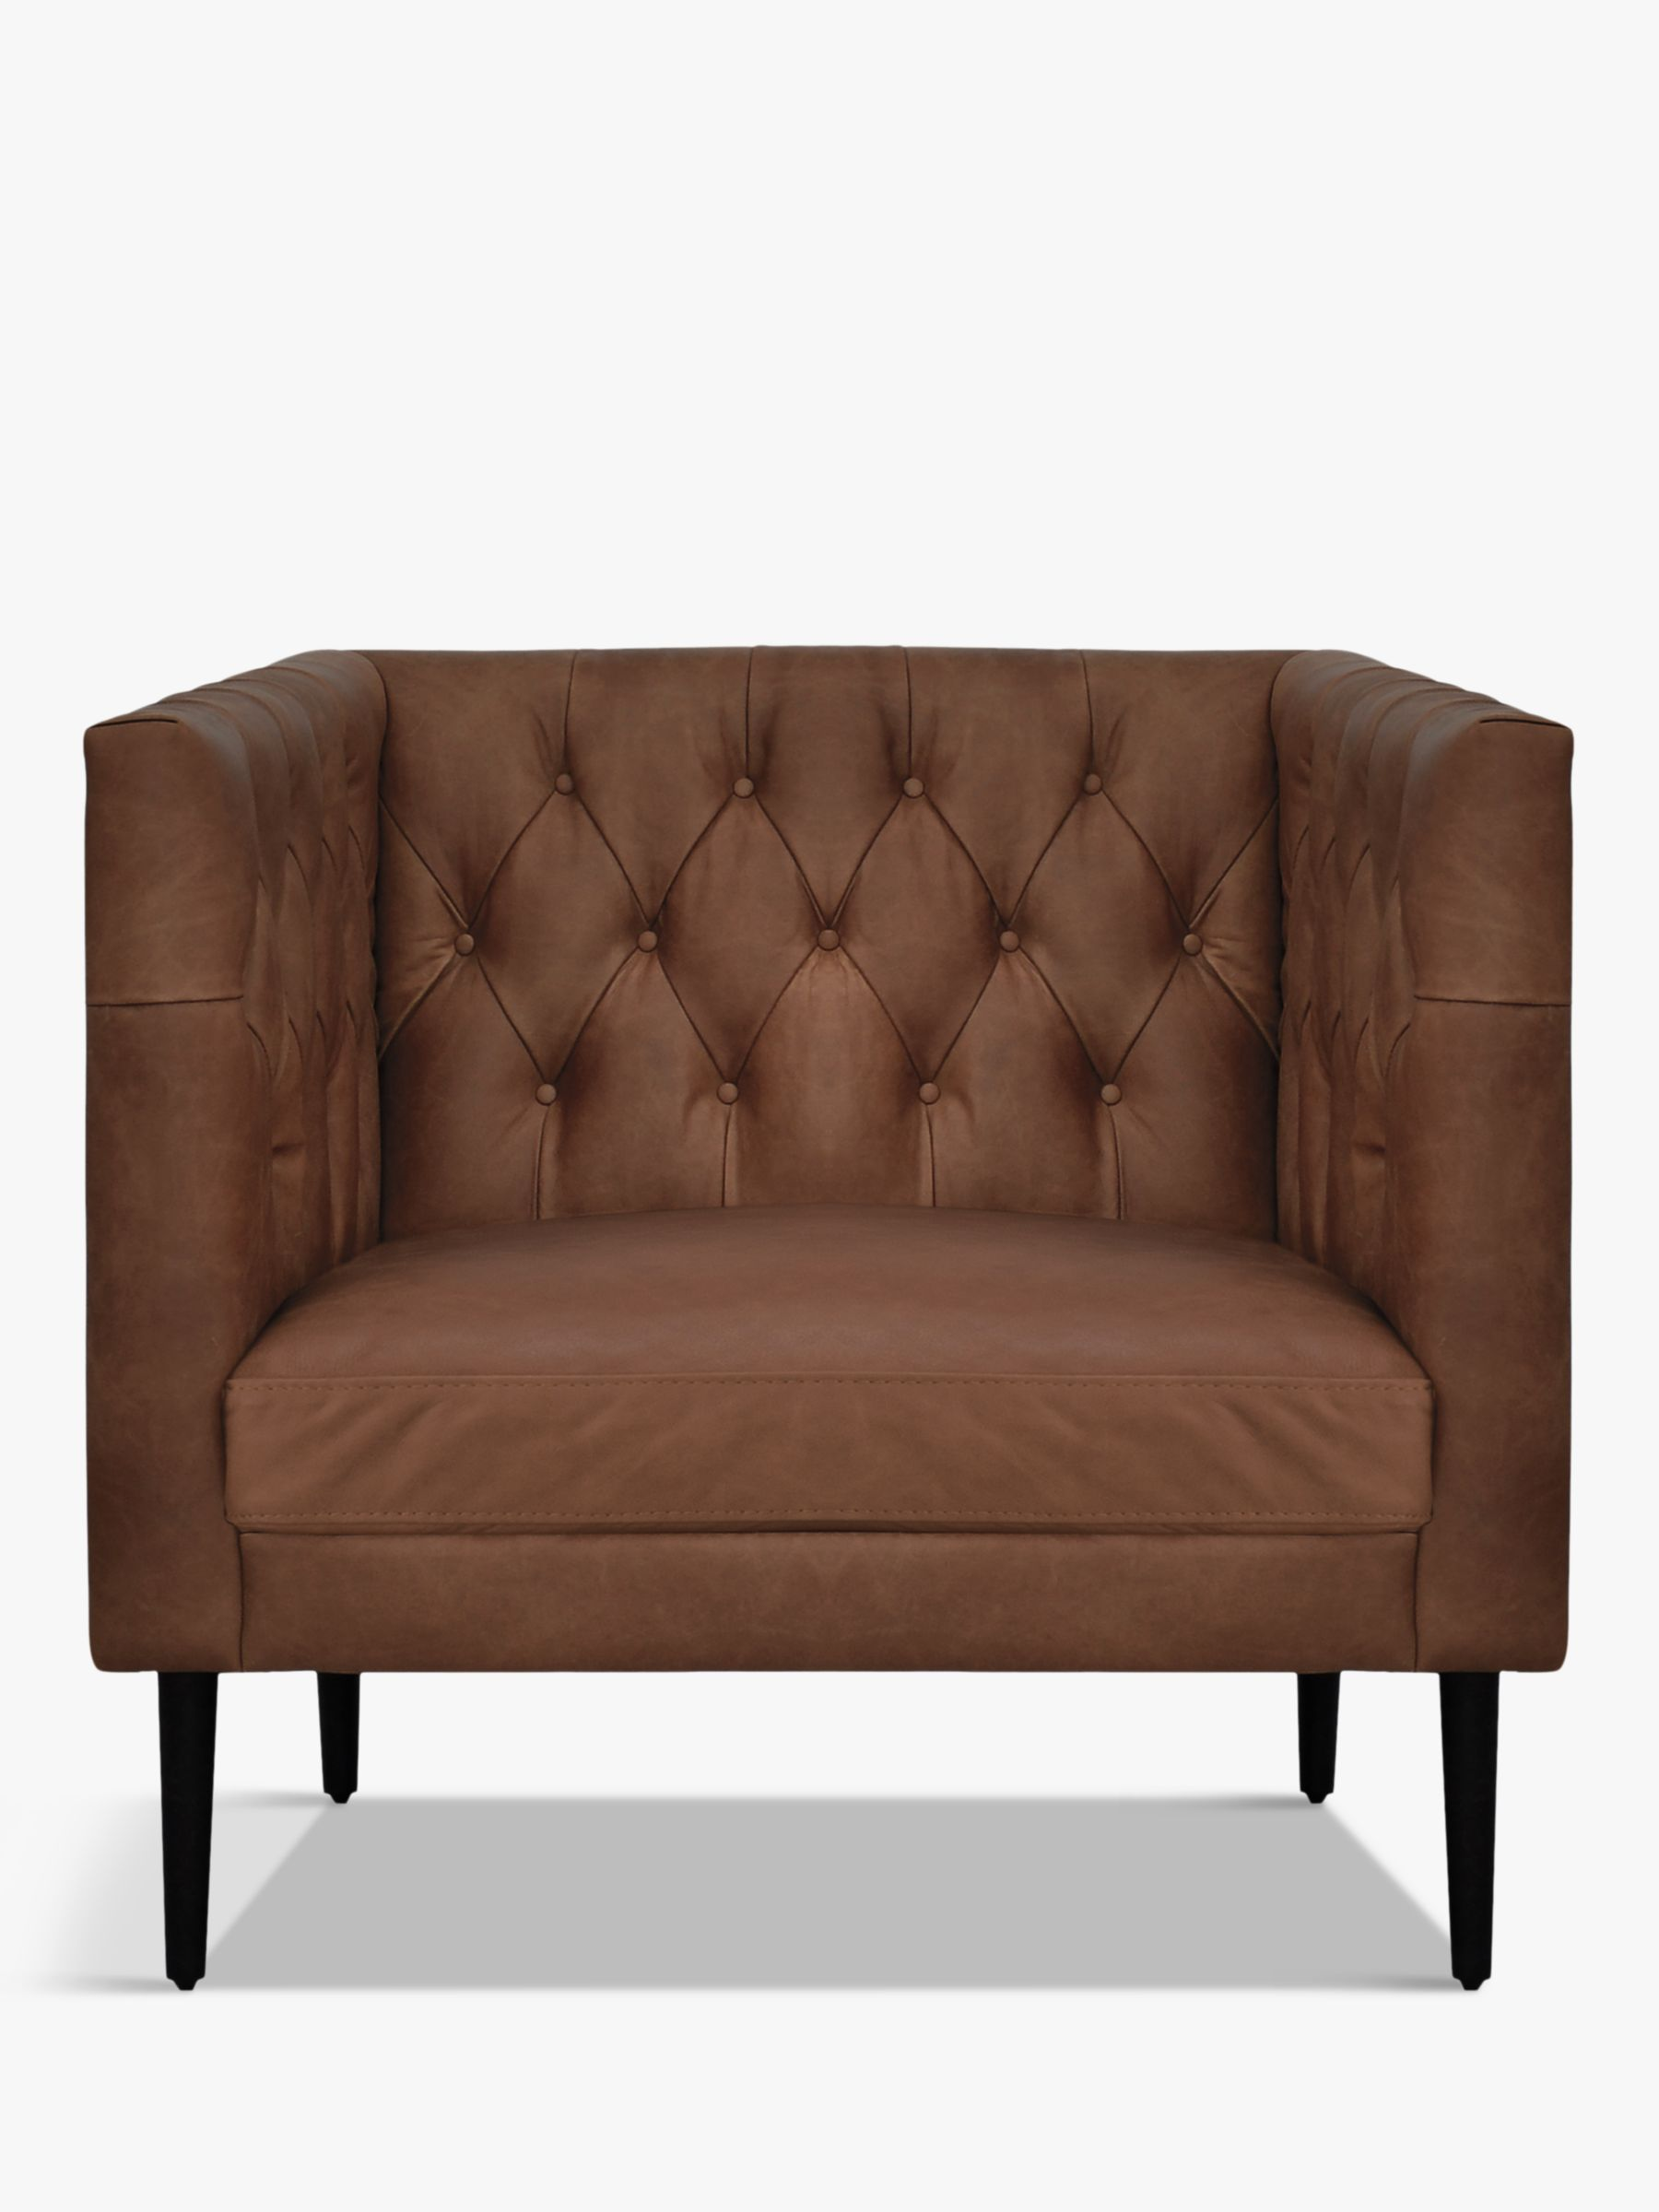 Halo Halo William Leather Armchair, Natural Washed Chocolate